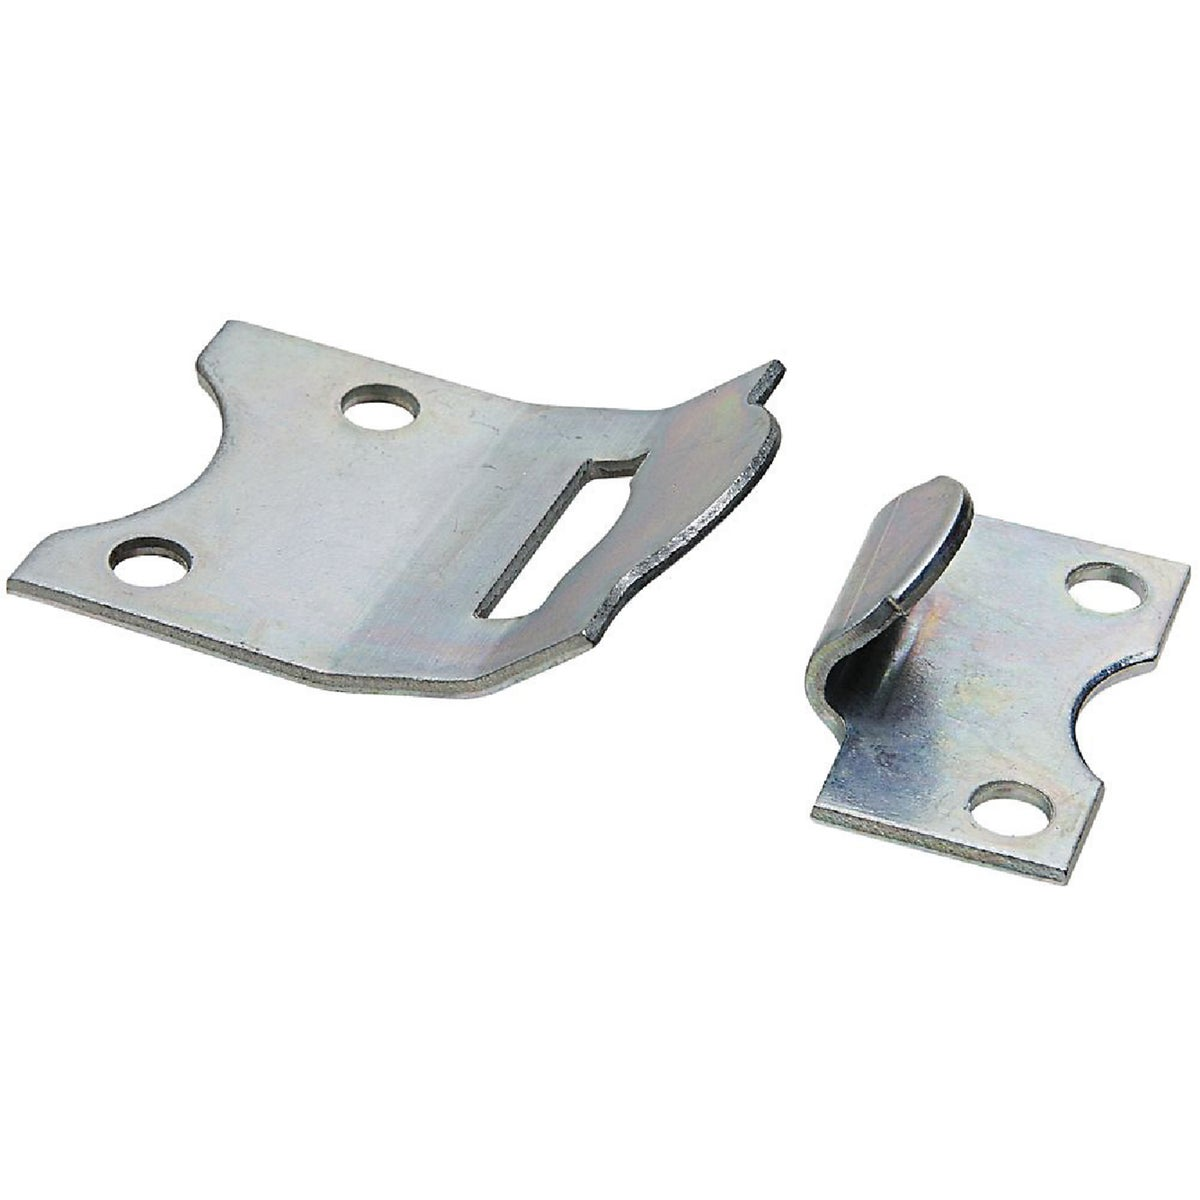 SCREEN DOOR HANGERS - N106682 by National Mfg Co